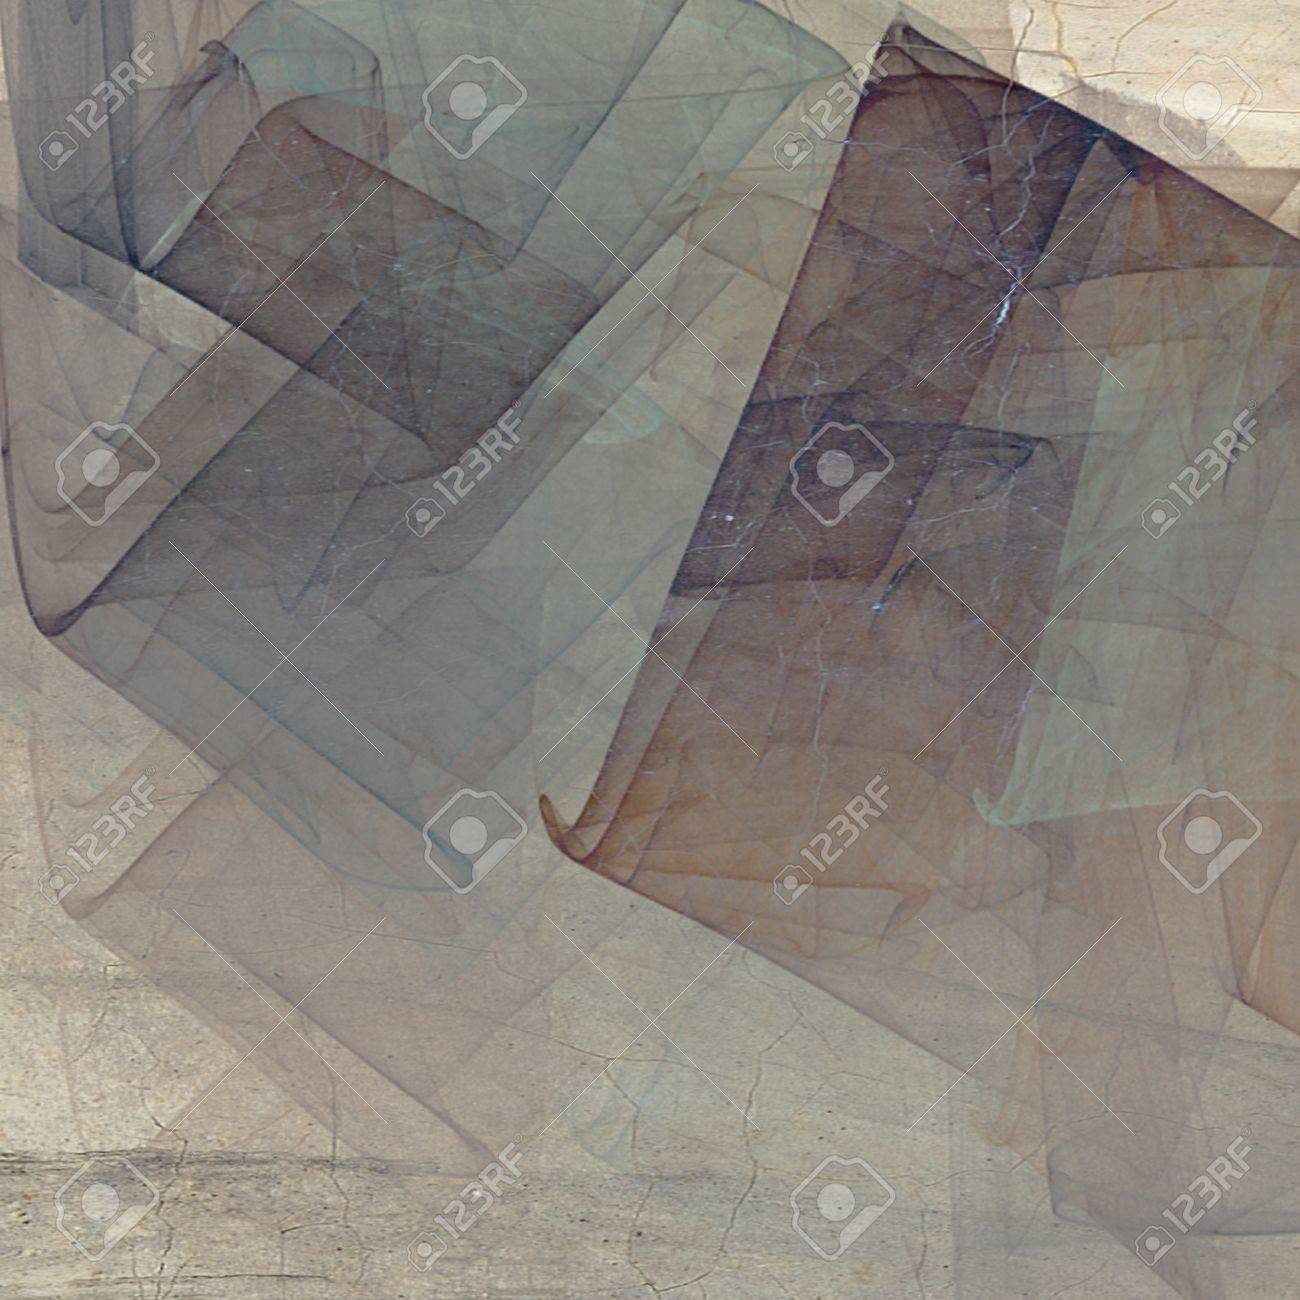 Abstract textured background. For creative grunge layout design, vintage illustrations, and stylish wallpaper or texture Stock Illustration - 17867559